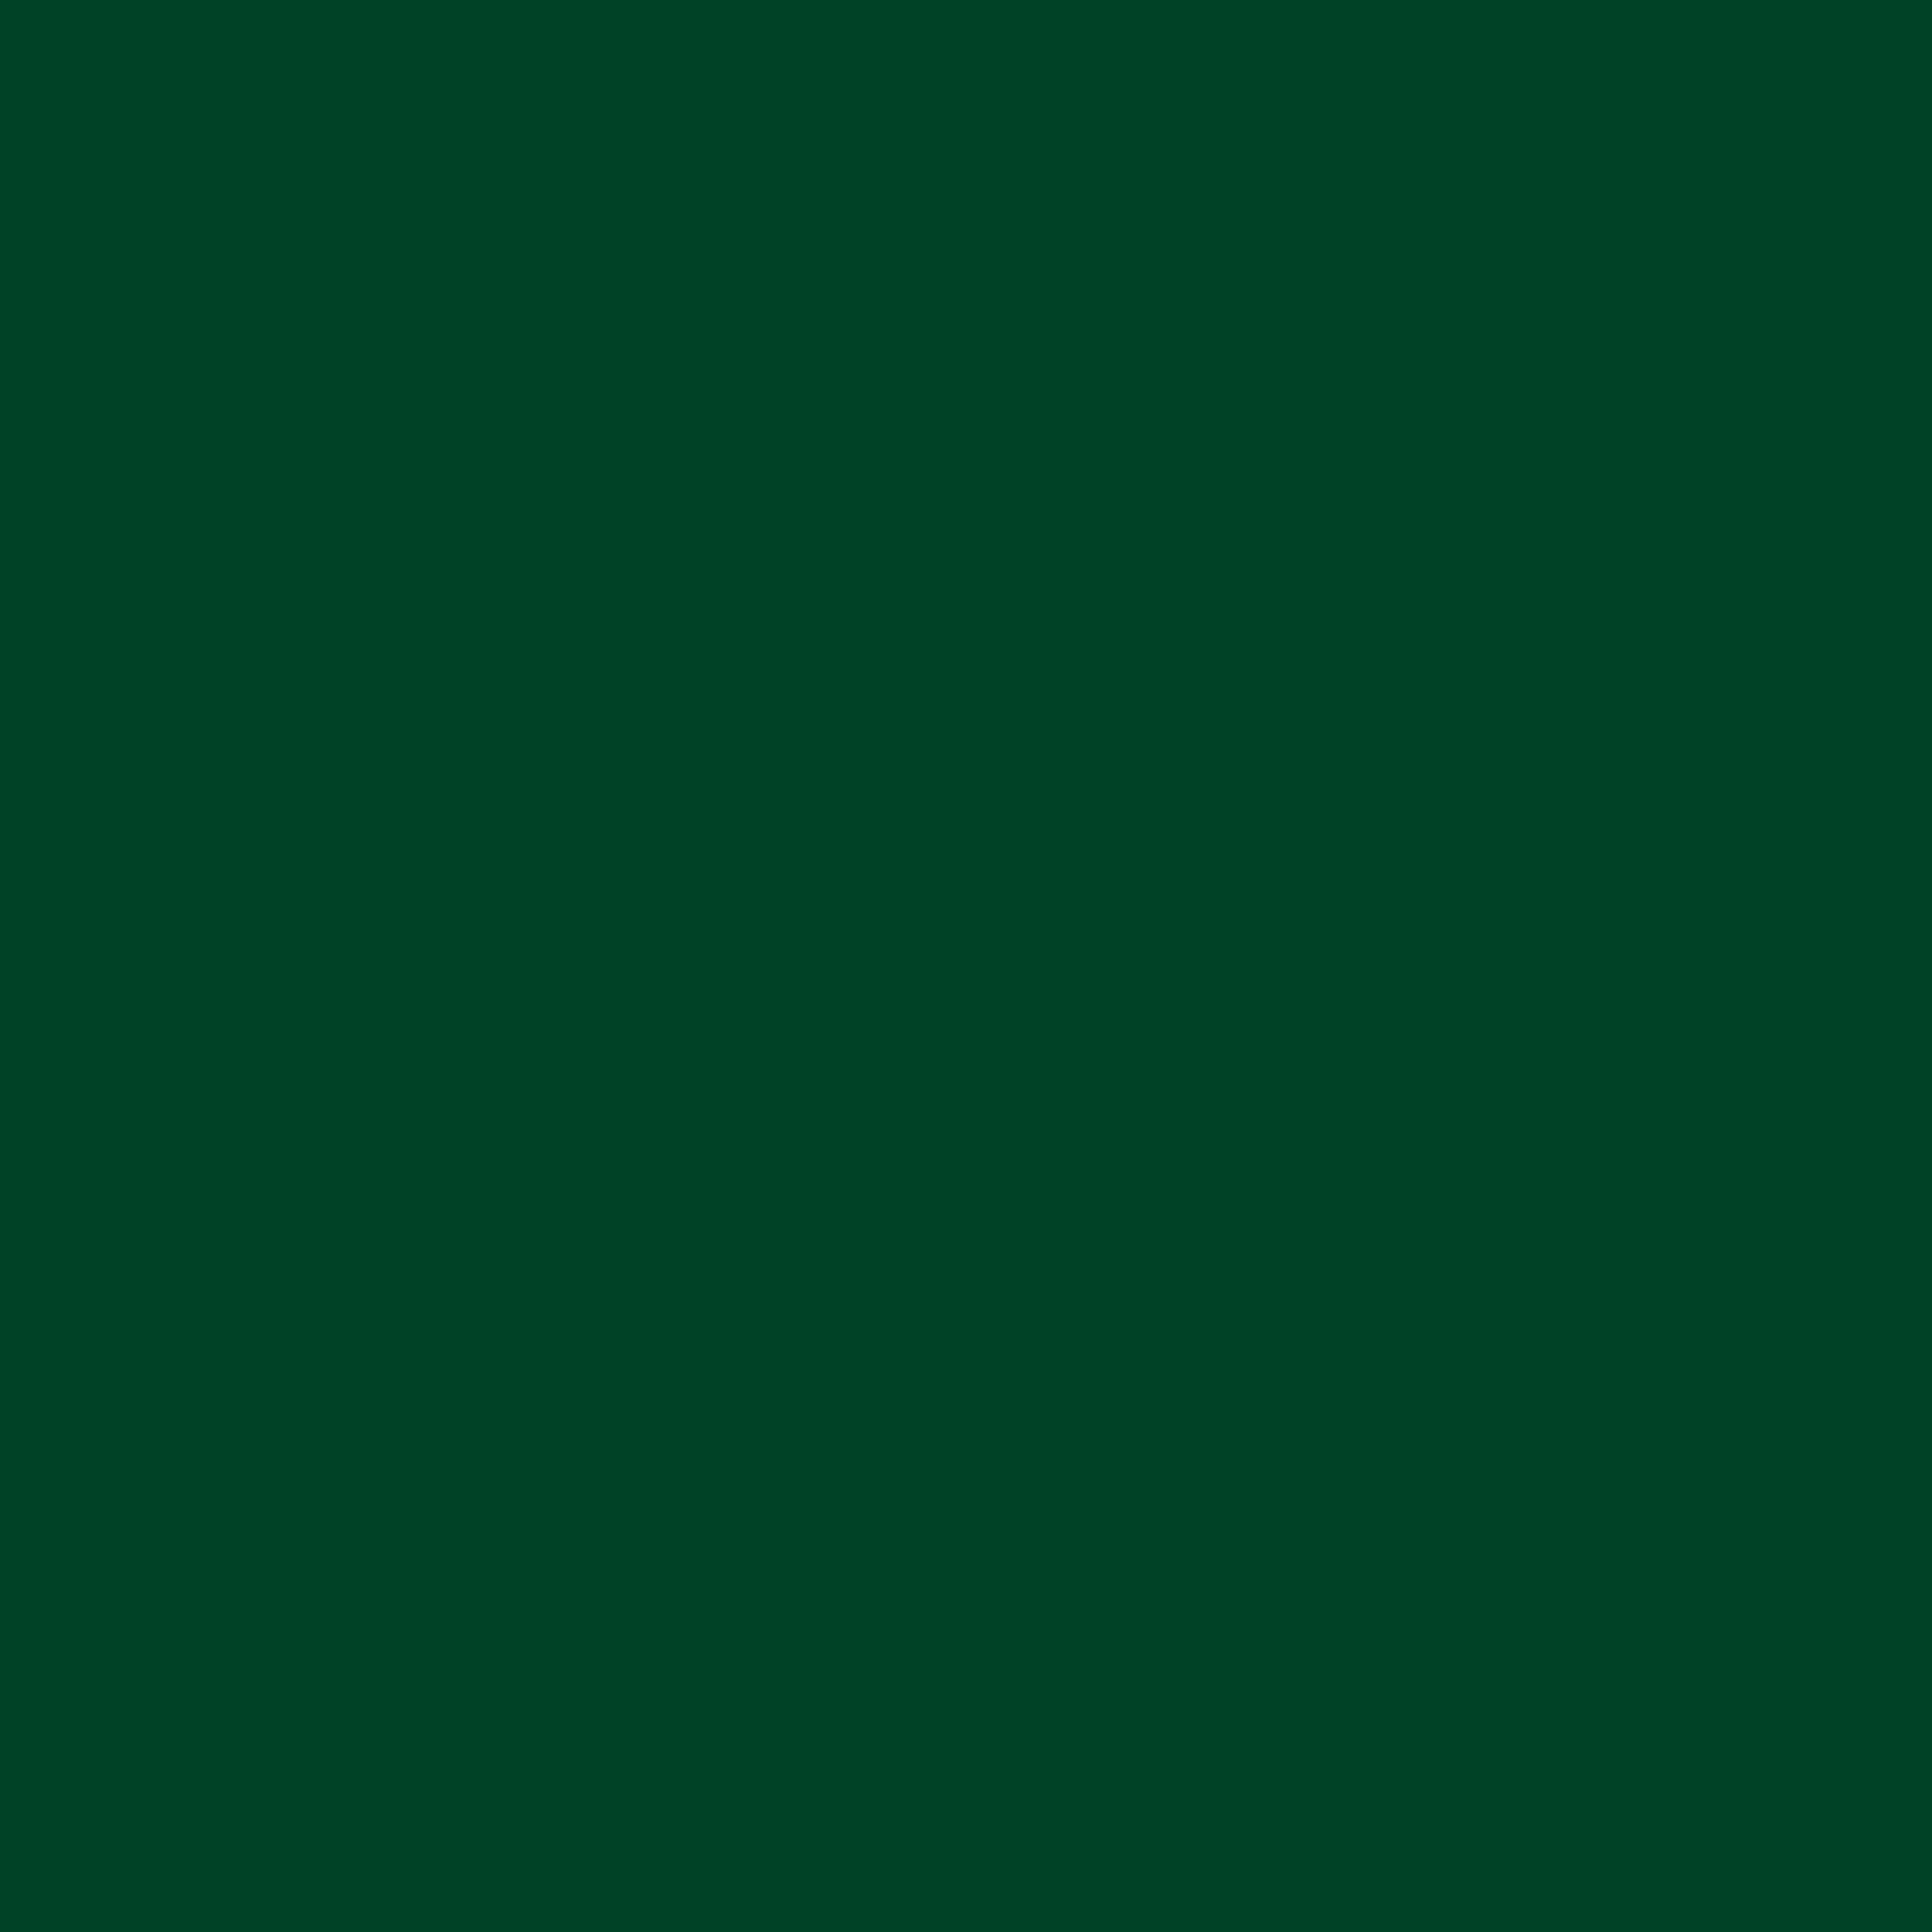 2732x2732 British Racing Green Solid Color Background